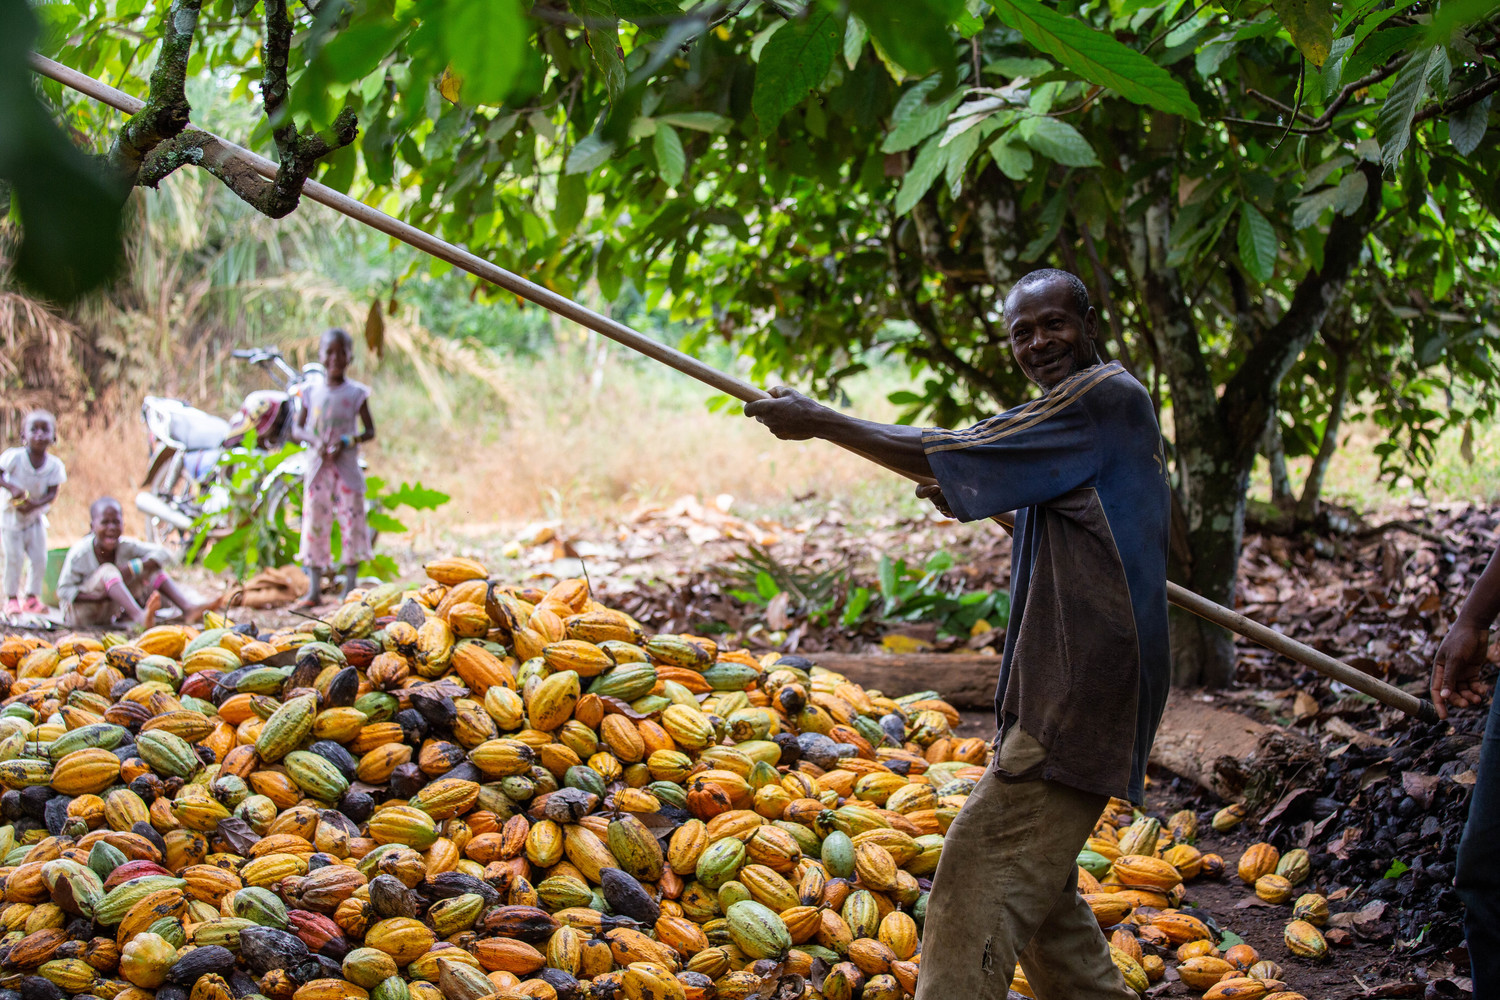 Farmworker in the cocoa sector of Cote d'Ivoire